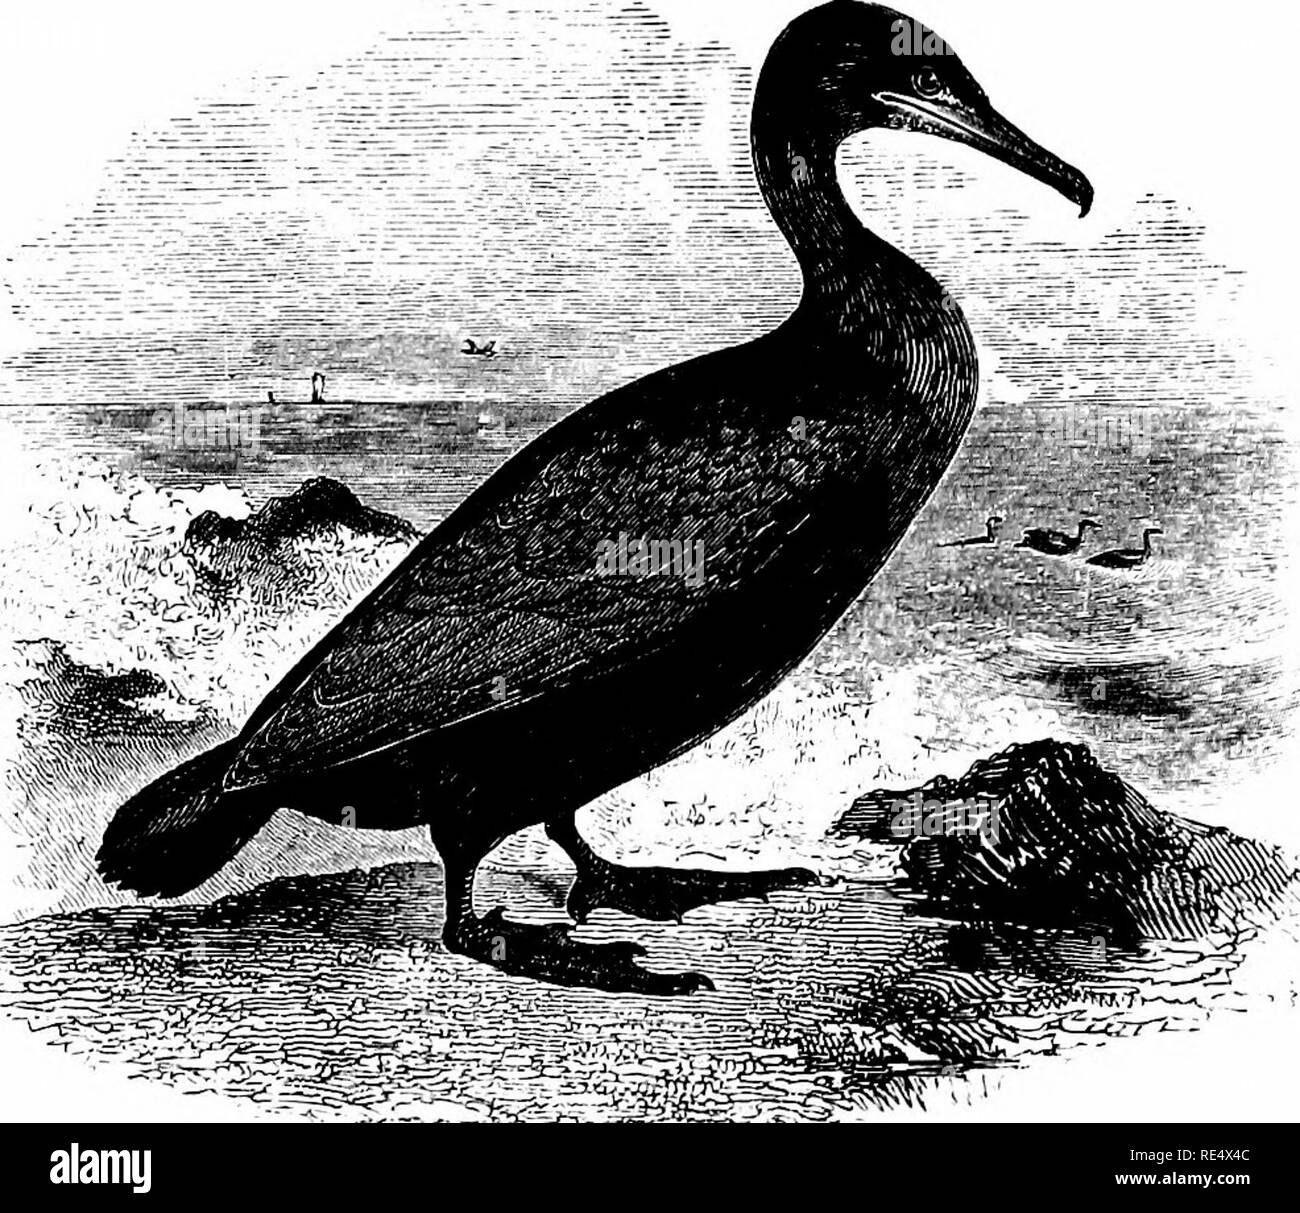 . An illustrated manual of British birds. Birds. PELECANIDiE. 363. ^^^1^^^ THE SHAG, OR GREEN CORMORANT. Phalacr6corax graculus (Linnoeus). The Shag, also known as the Scart, Scarf, or Crested Cormorant, may be distinguished from the preceding species by its smaller size, and, when adult, by its prevailing green colour. The illustration is taken from a bird in autumn plumage; the crest, which is assumed very early in spring and only retained for a few months, is tuft-shaped and curved forward. The young are not so easily recognized on the wing, but may be distinguished on examination by the ta - Stock Image